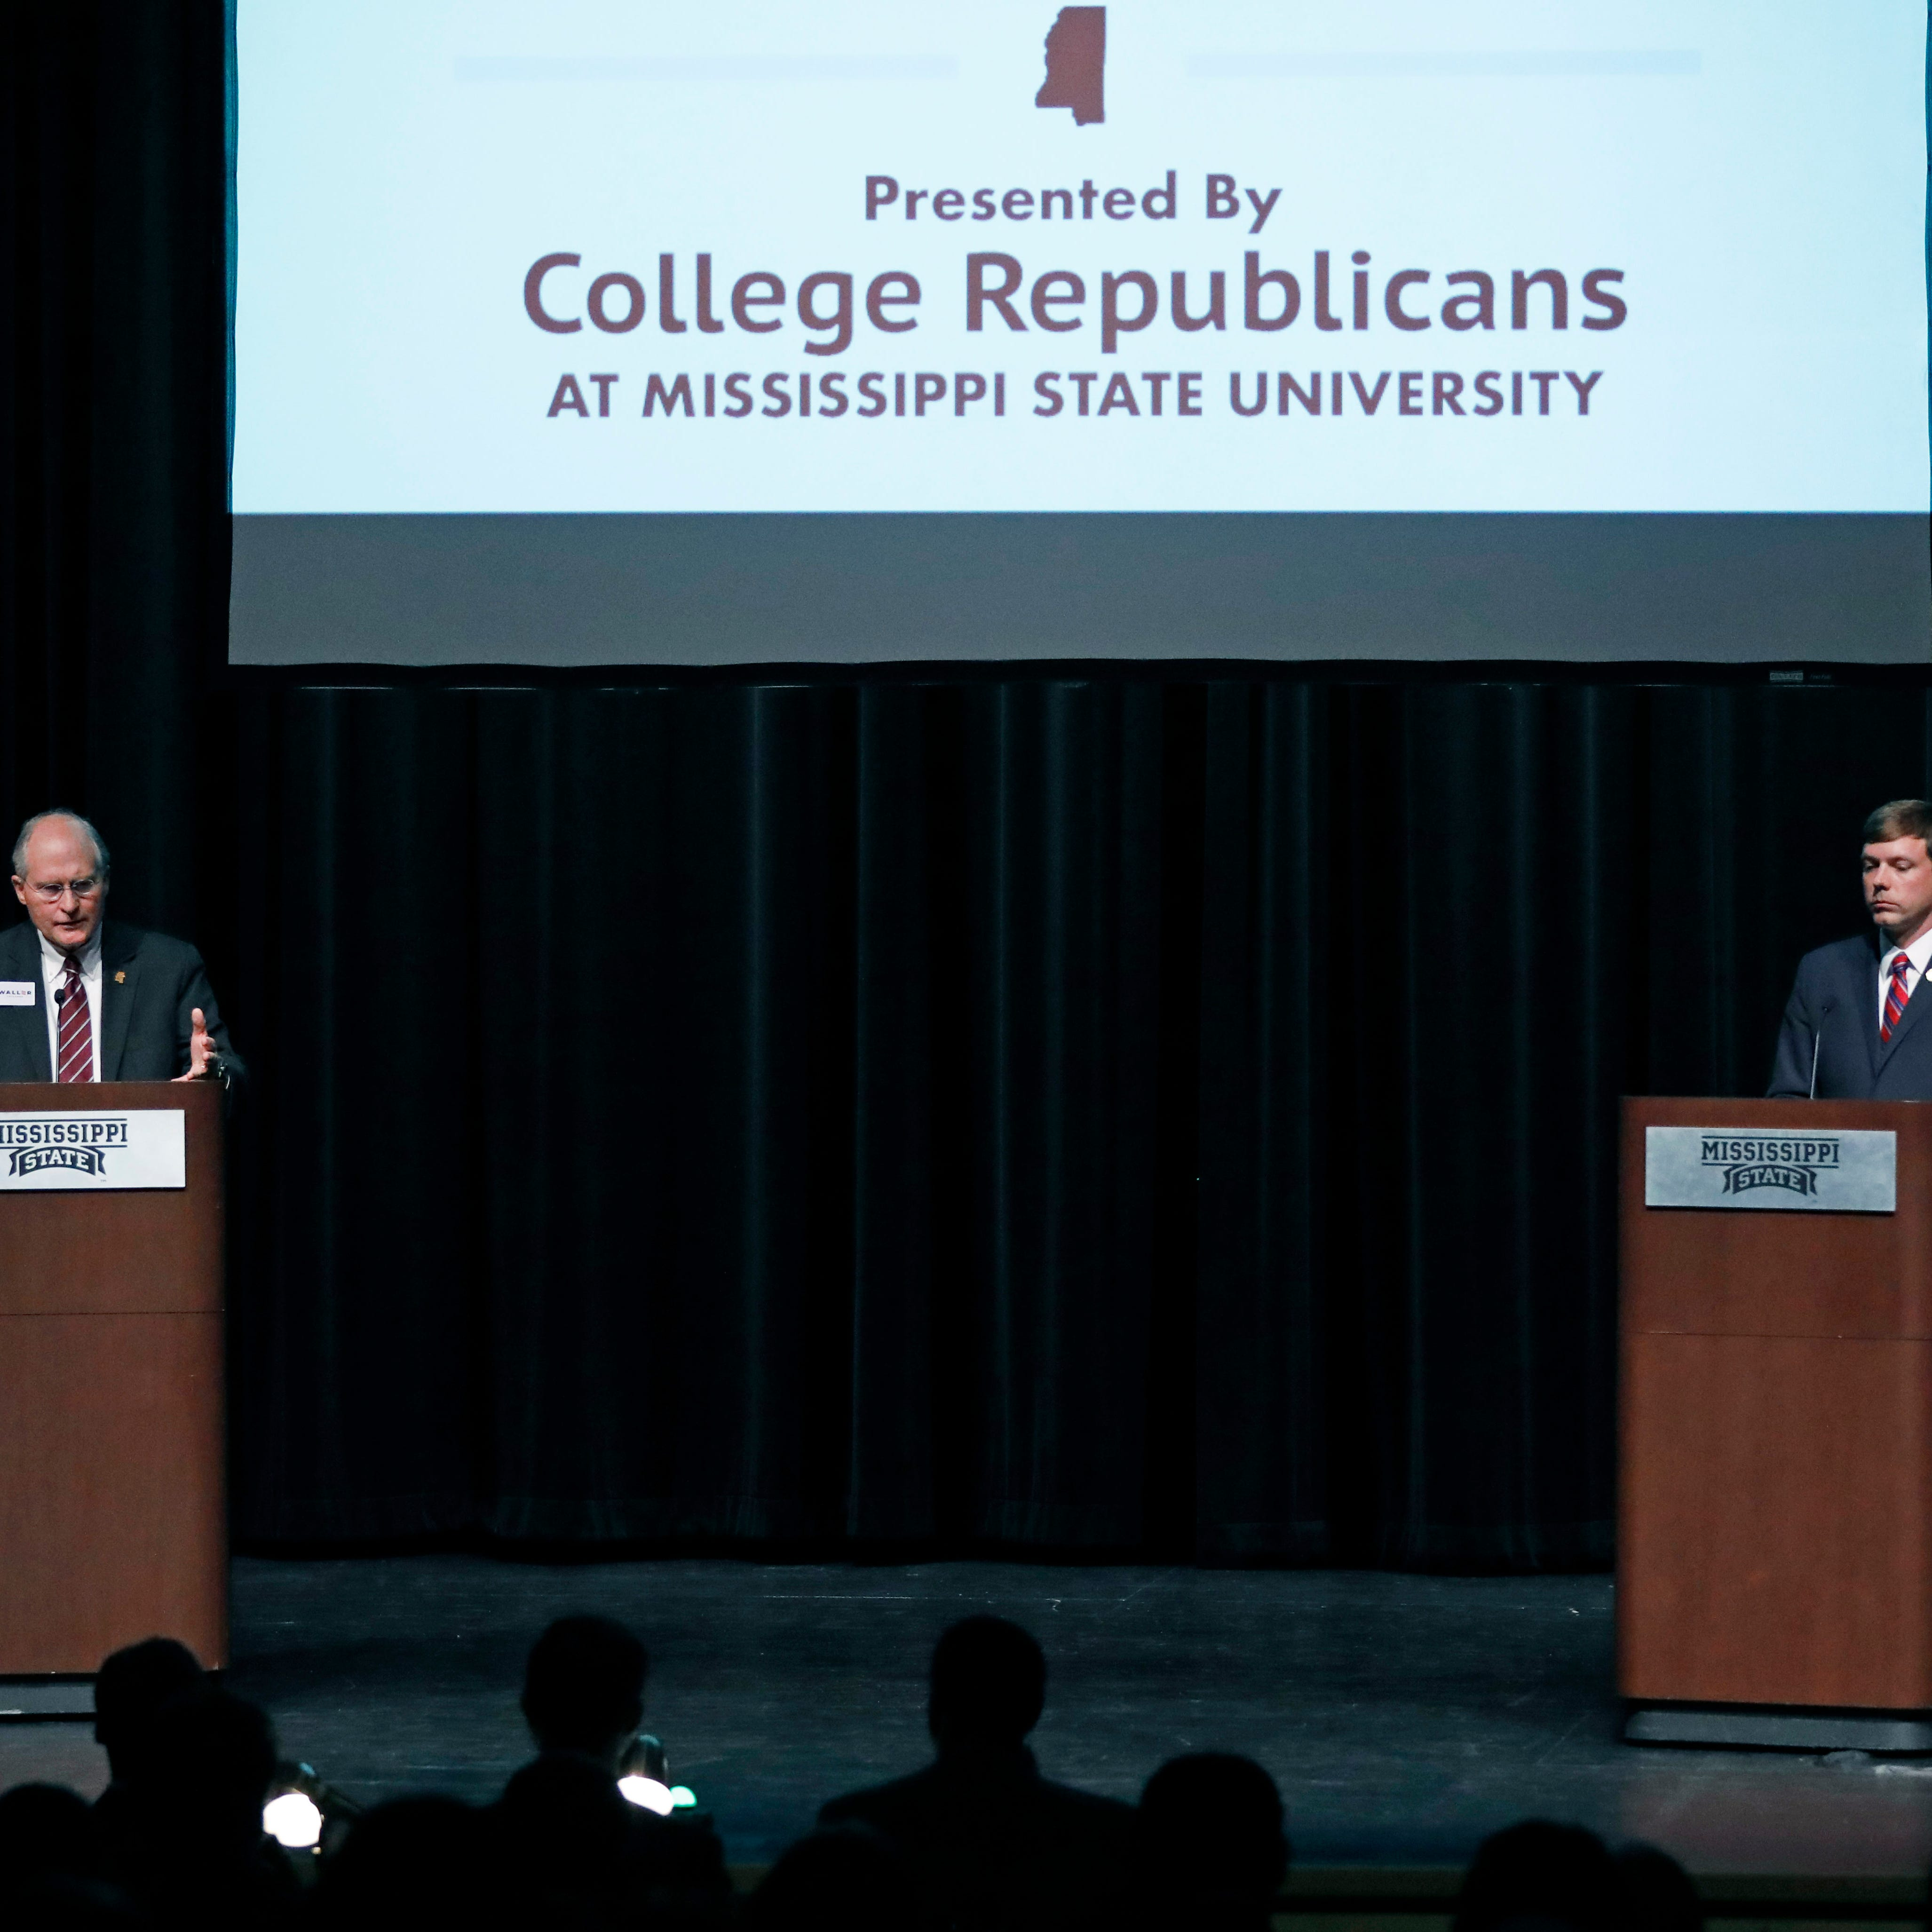 Former Supreme Court Chief Justice Bill Waller, left, gestures during a debate between himself and Rep. Robert Foster, R-Hernando, during a Mississippi Republican gubernatorial debate in Starkville, Miss., Tuesday, April 2, 2019. Republican Lt. Gov. Tate Reeves, also a candidate, did not take part in the debate.